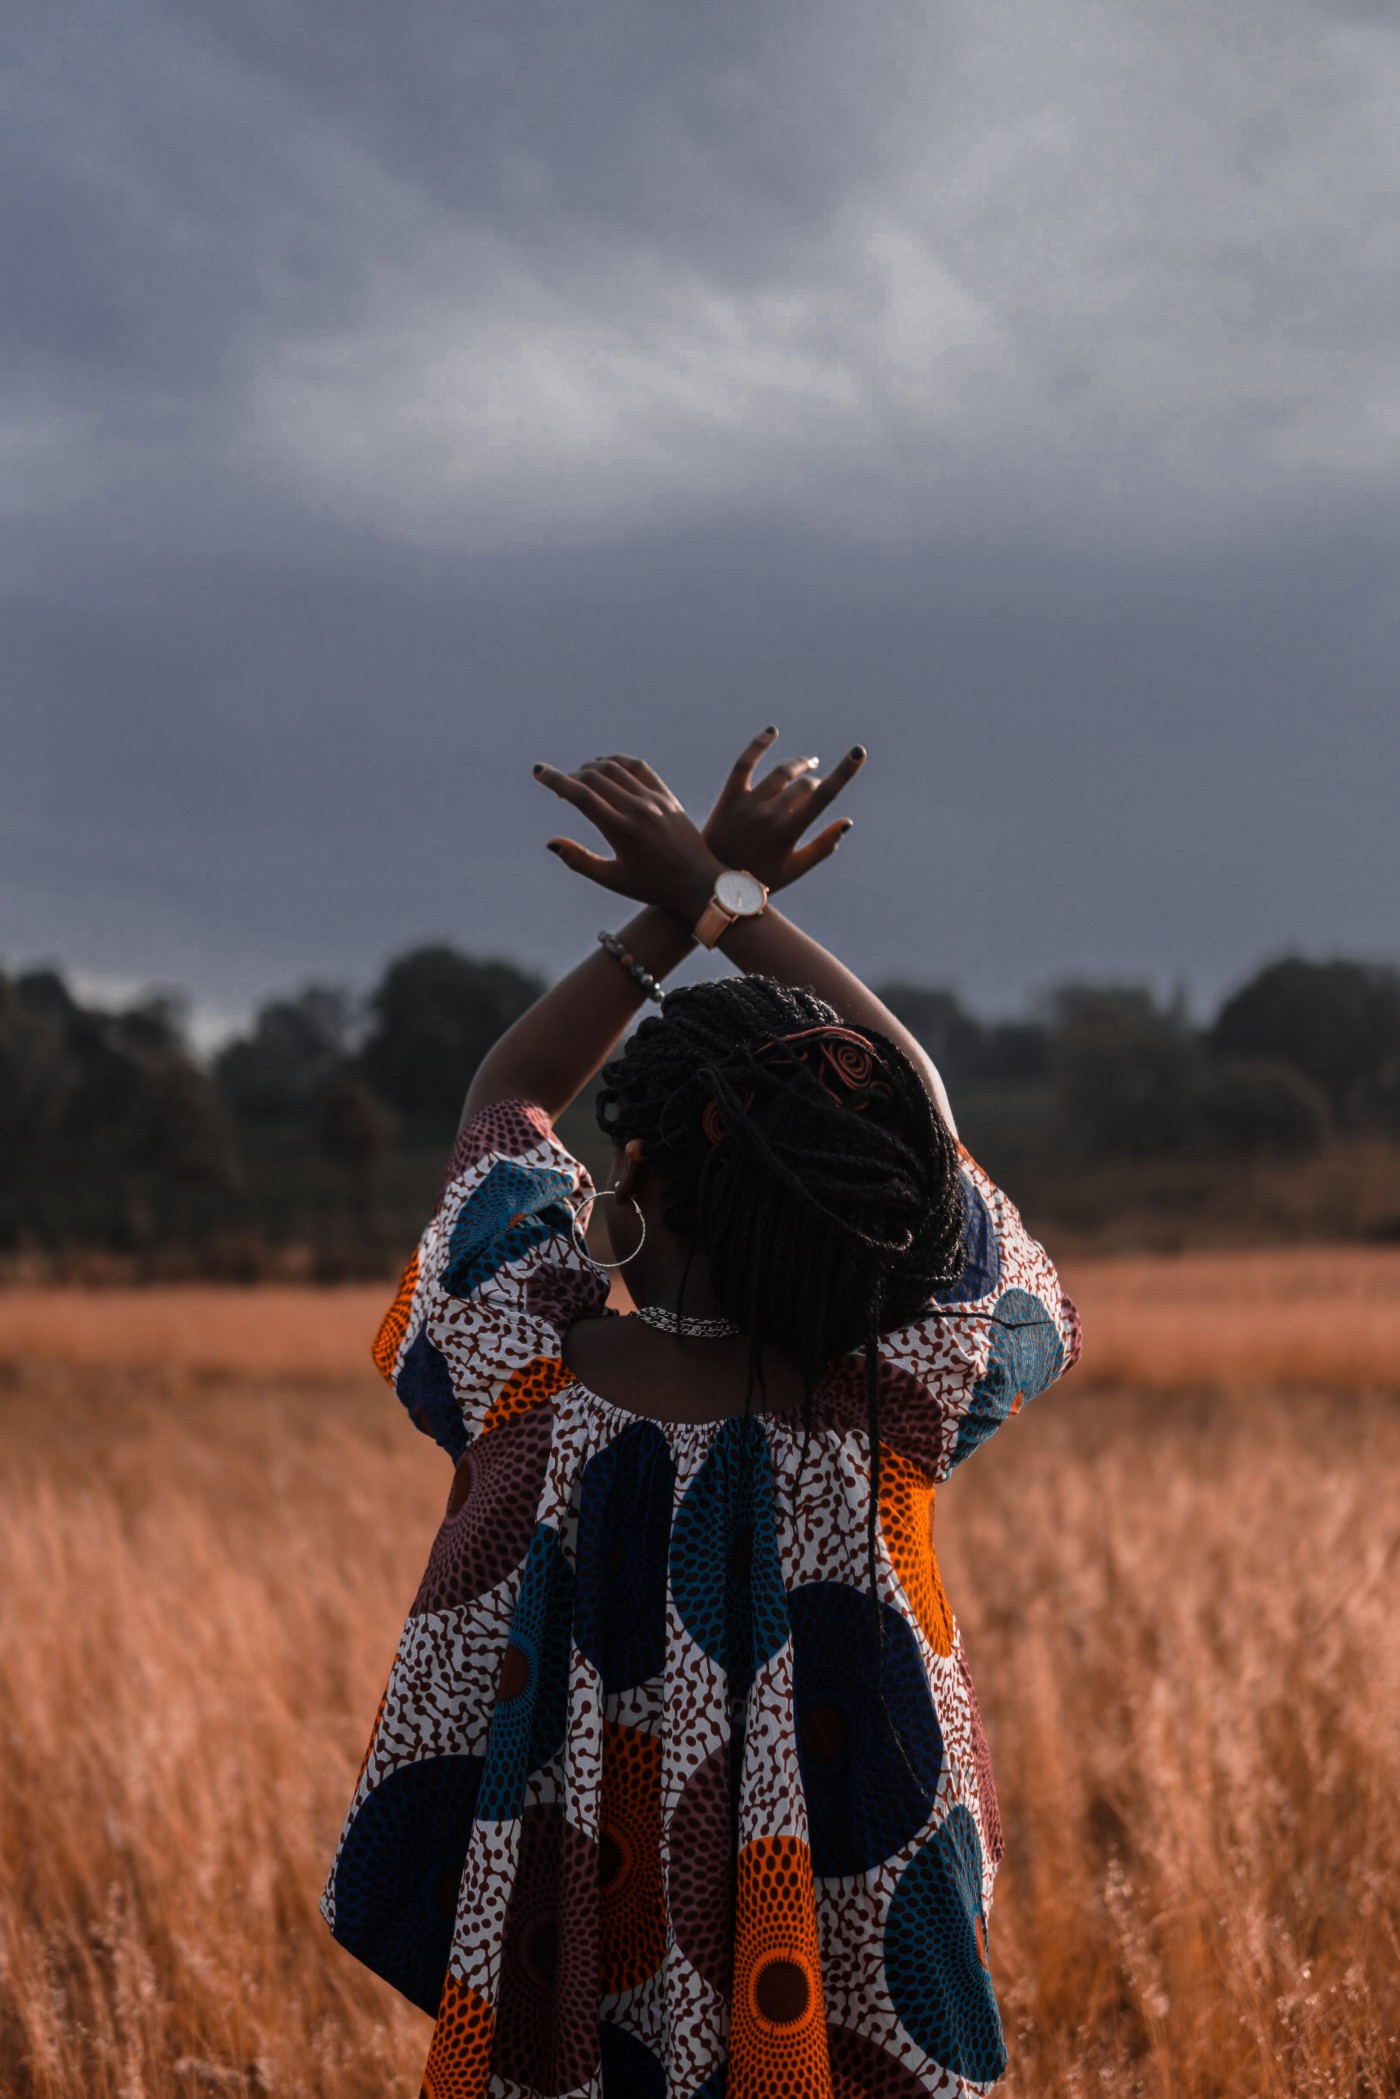 Black womxn with braids in African print dress, back to camera, hands up towards a grey sky.